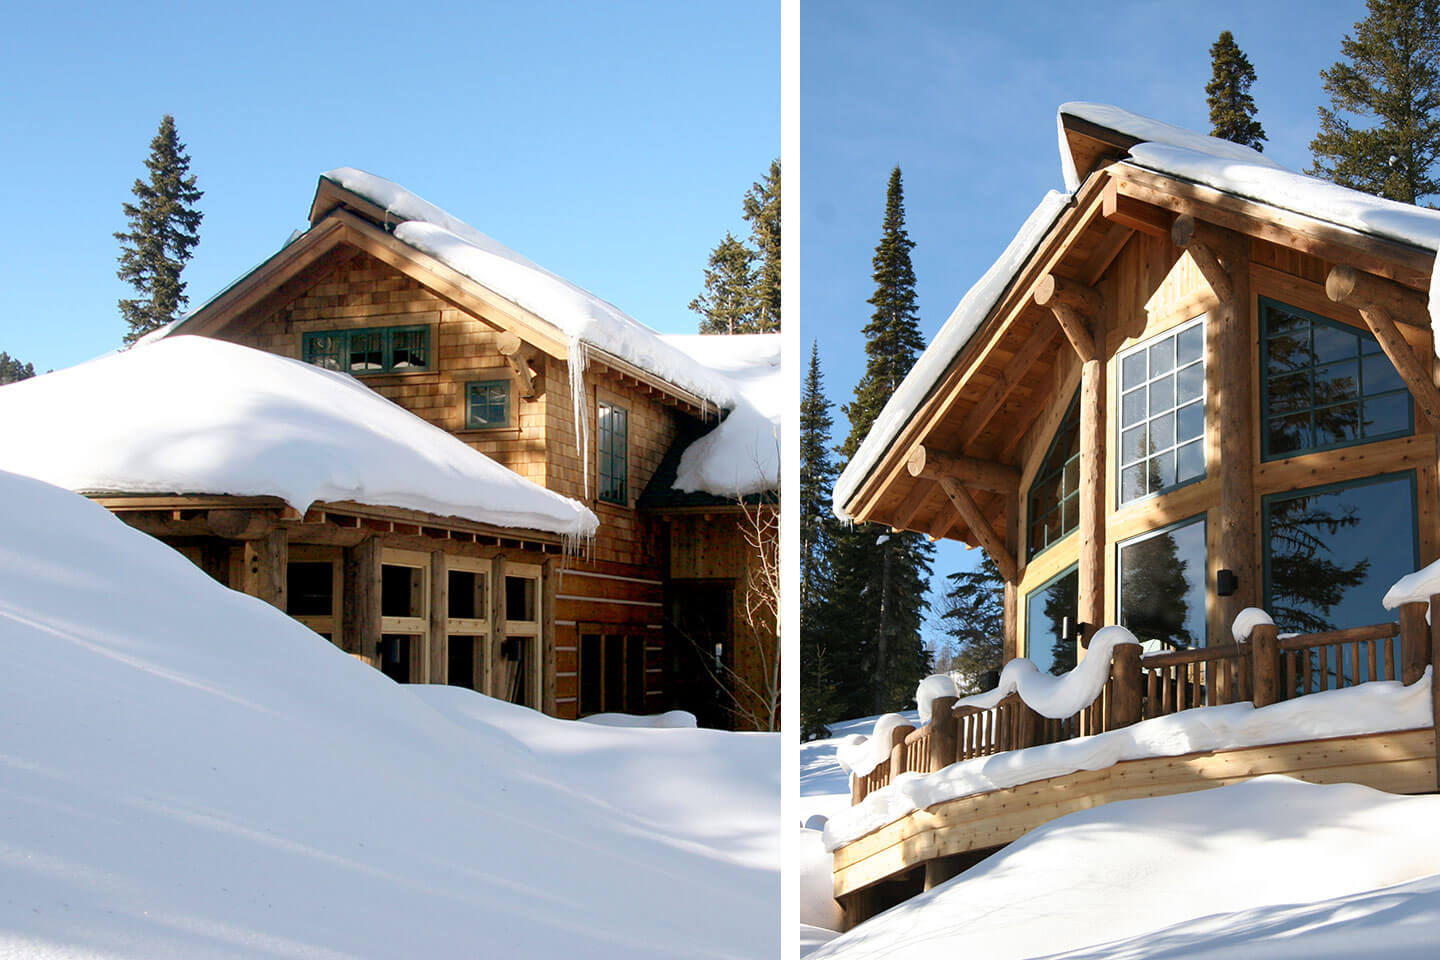 Ski lodge under a heavy snow cover